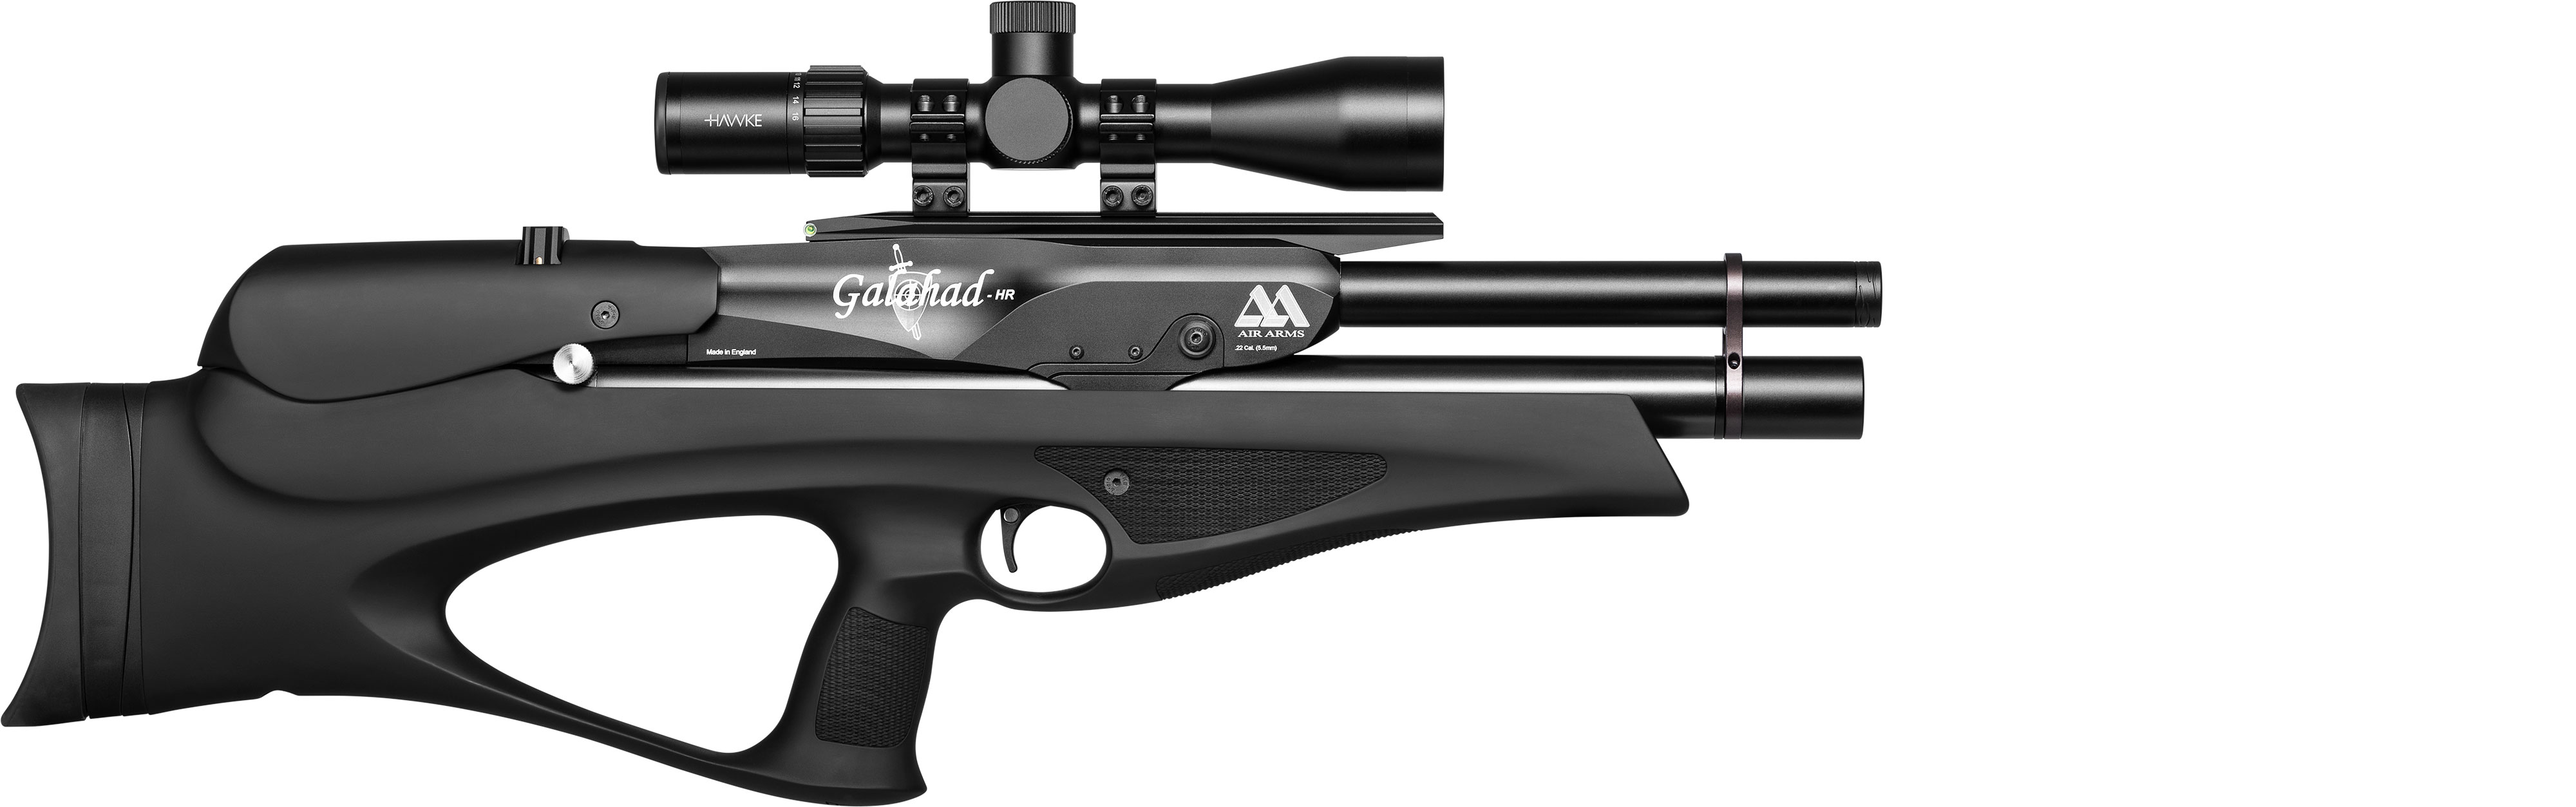 Galahad HP Carbine Soft-Touch Black